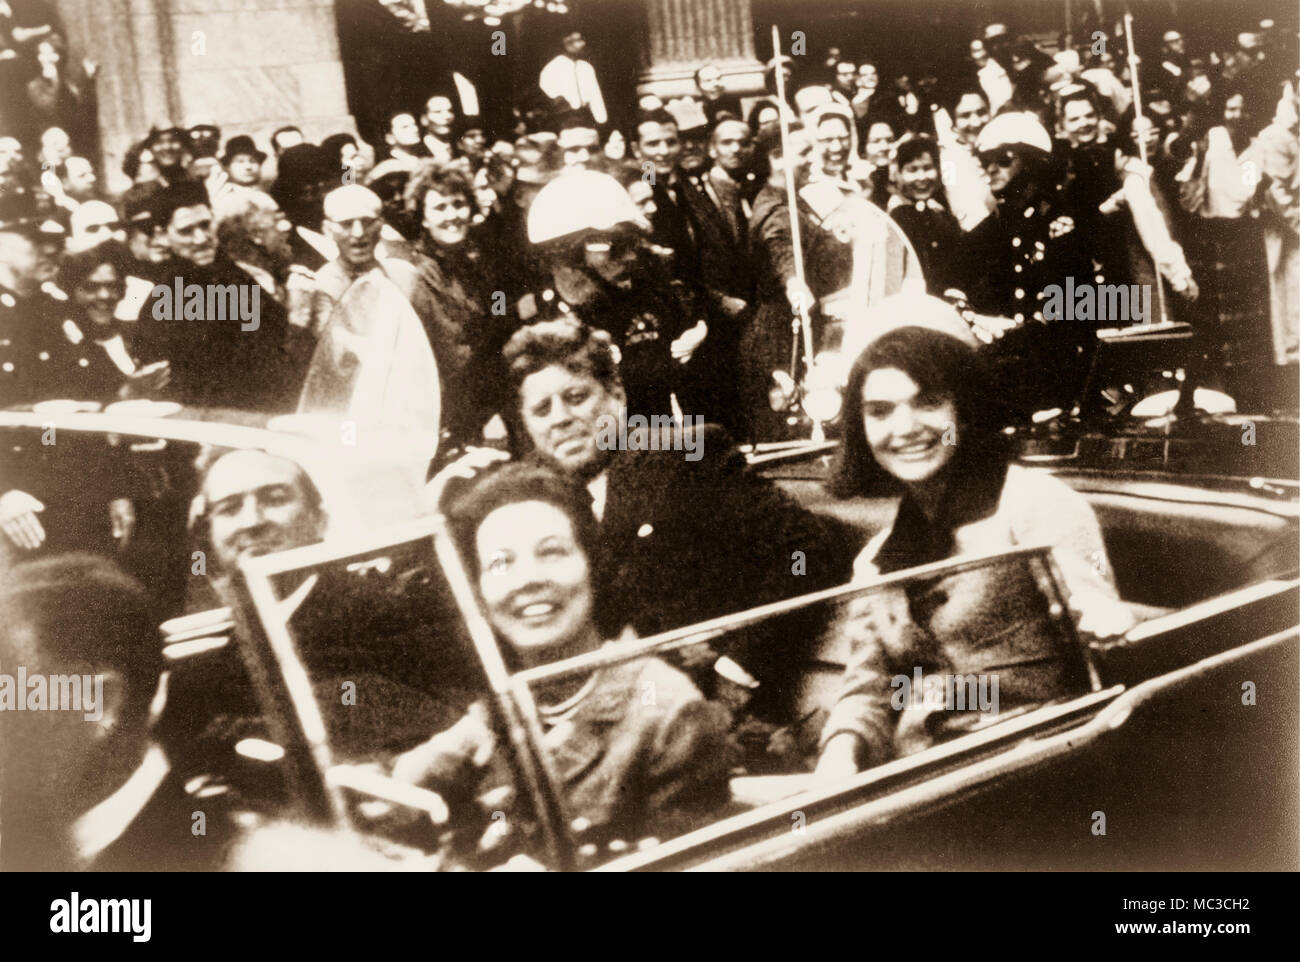 John F. Kennedy, Jacquelyn Kennedy, Texas Governor John Connally and Mrs. Connally in open top presidential limousine moments before the president's assasination in Dallas, Texas in November 1963. - Stock Image